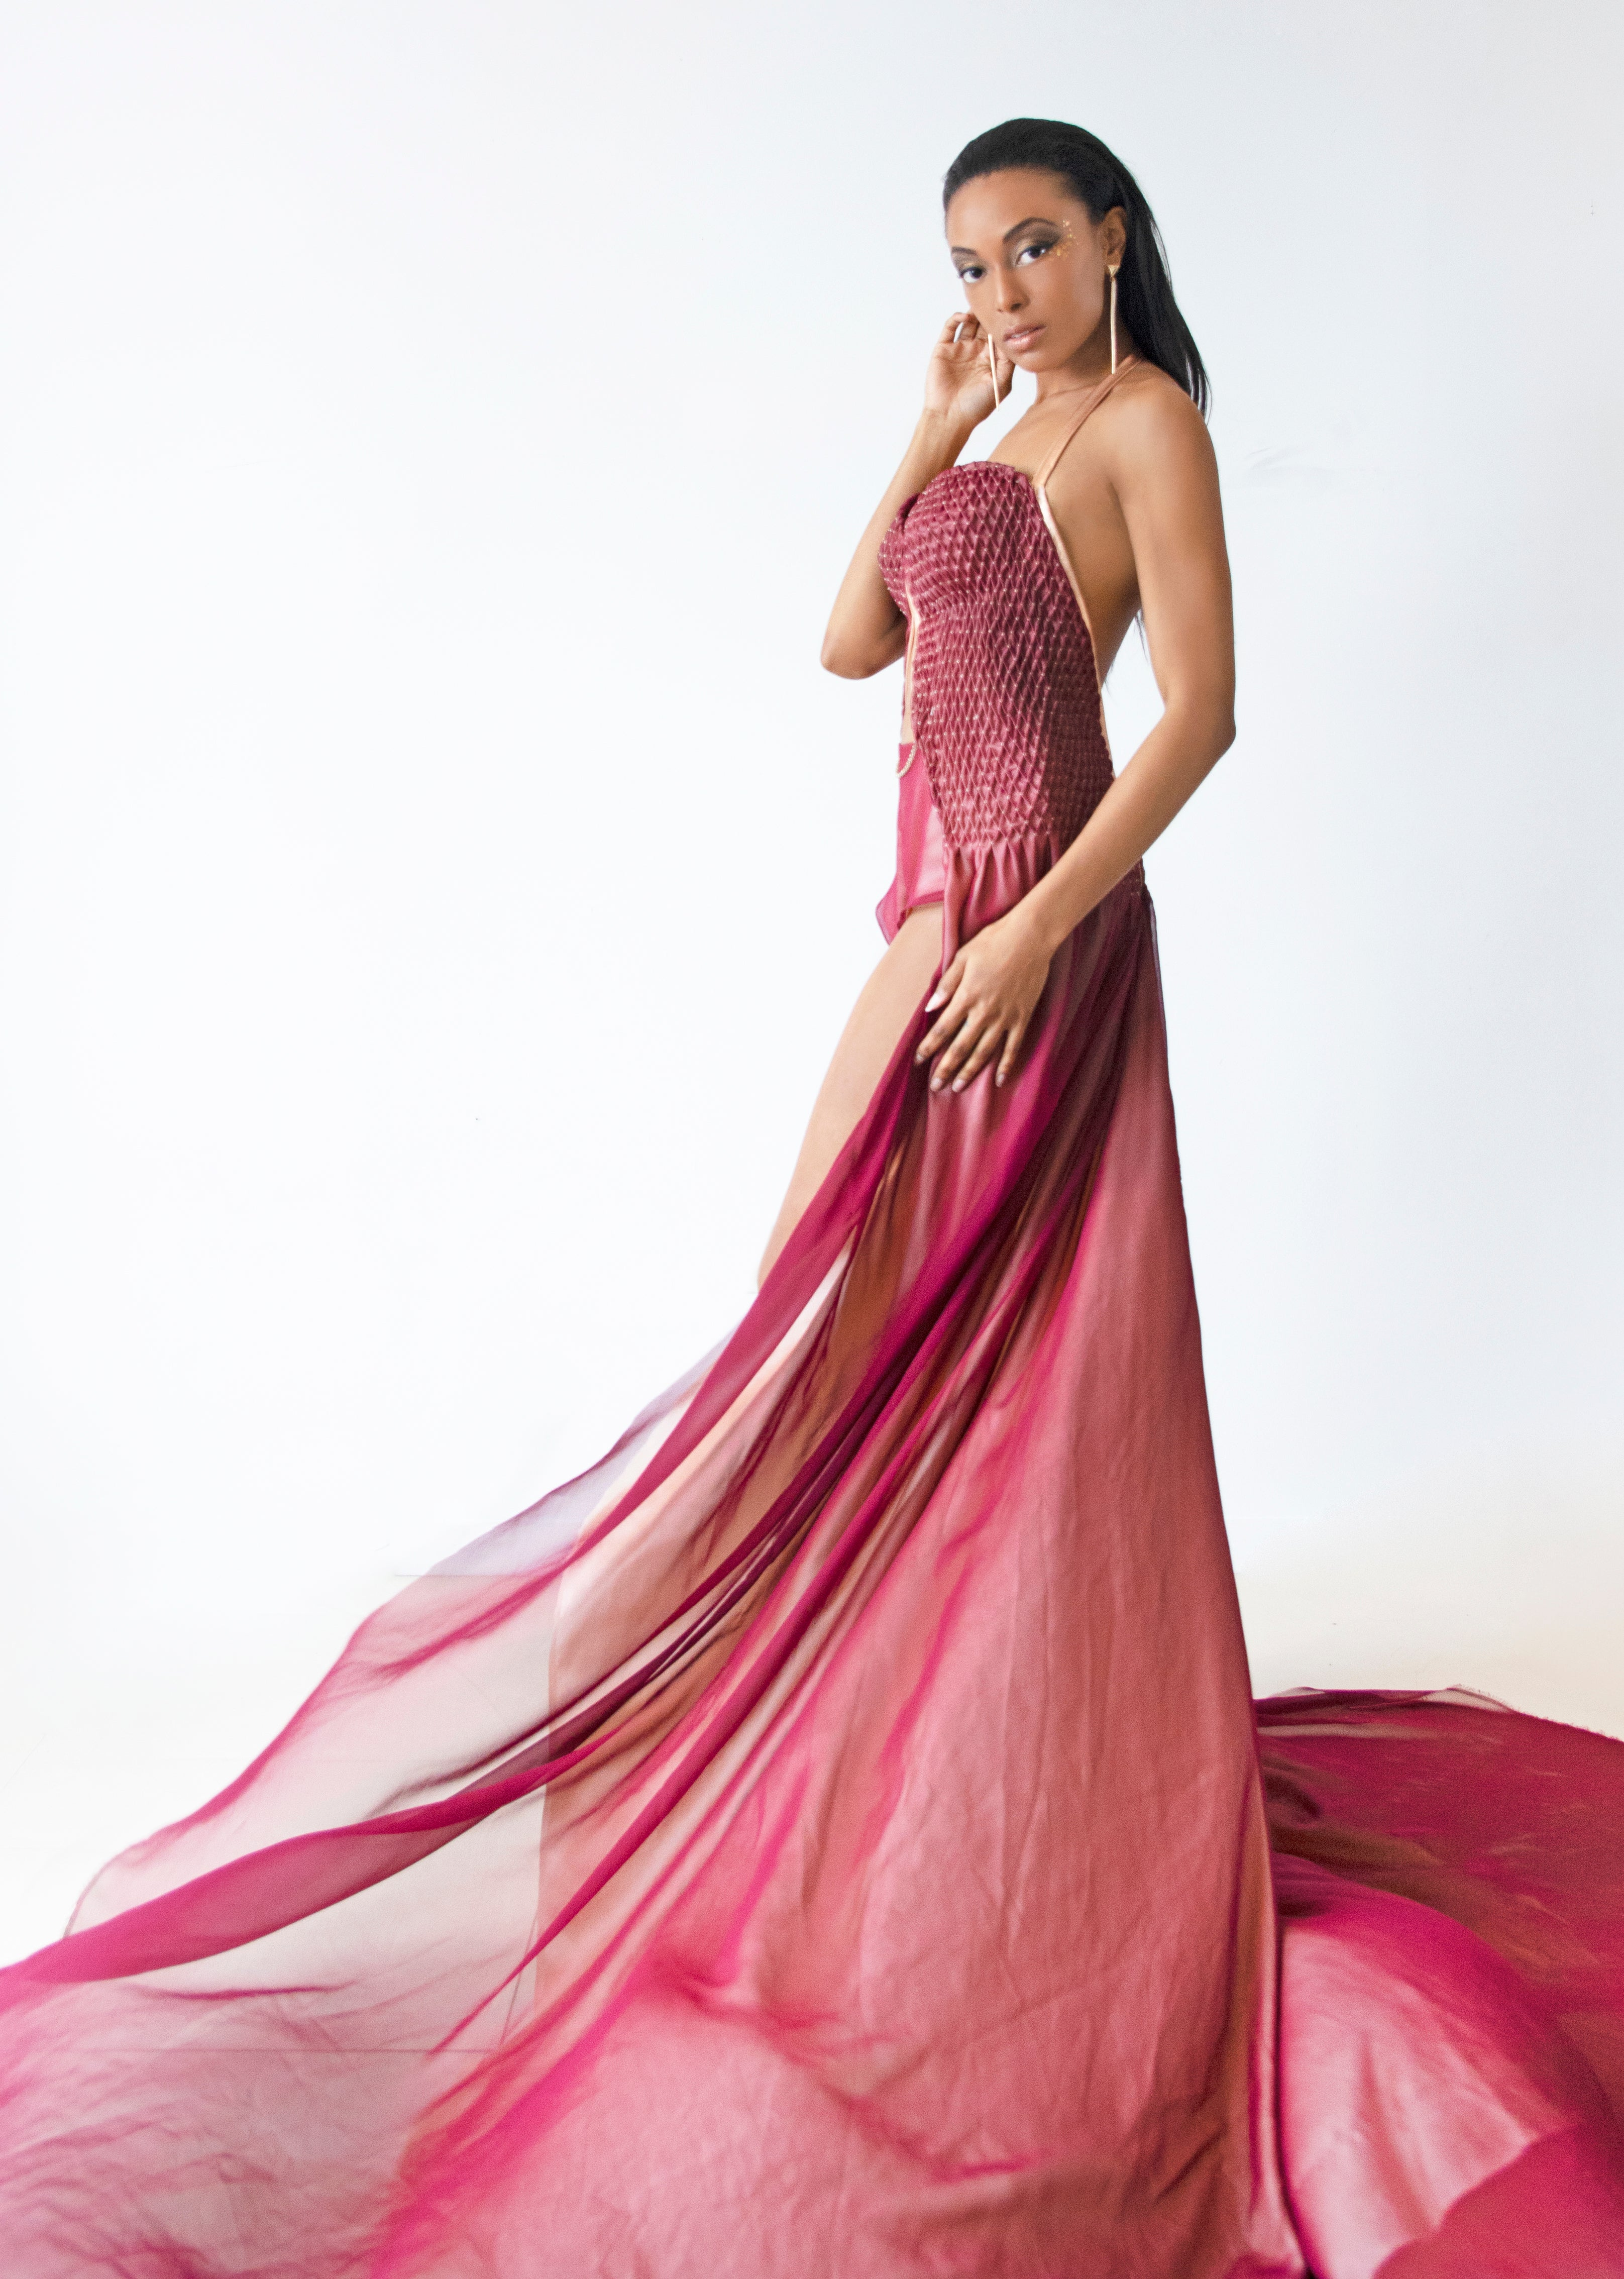 Silk Chiffon over Charmeuse Hand-Smocked Evening Gown - KxLNewYork